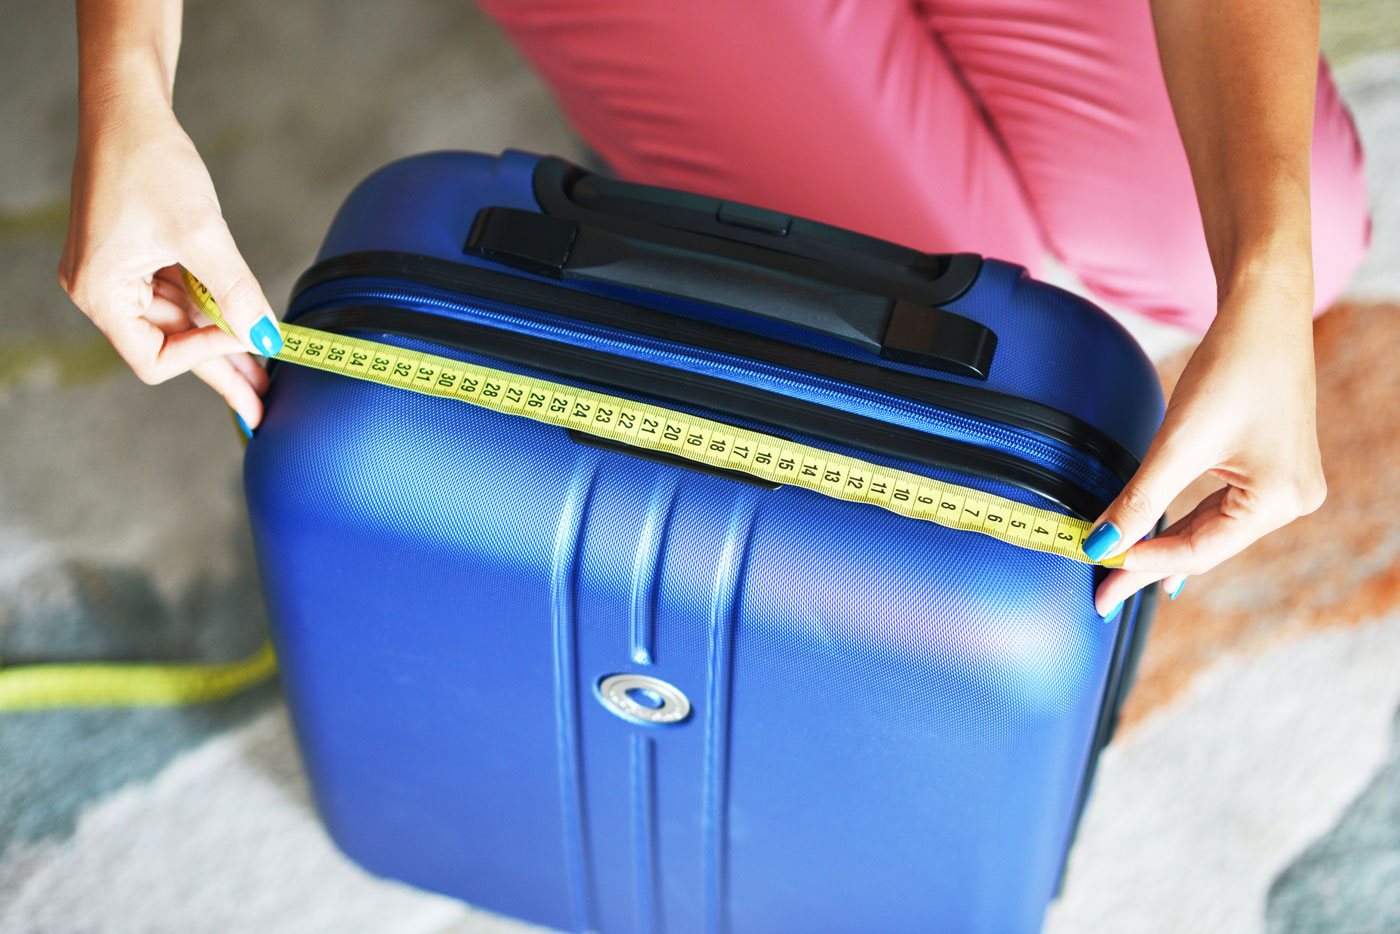 Traveler measuring their luggage before packing for vacation